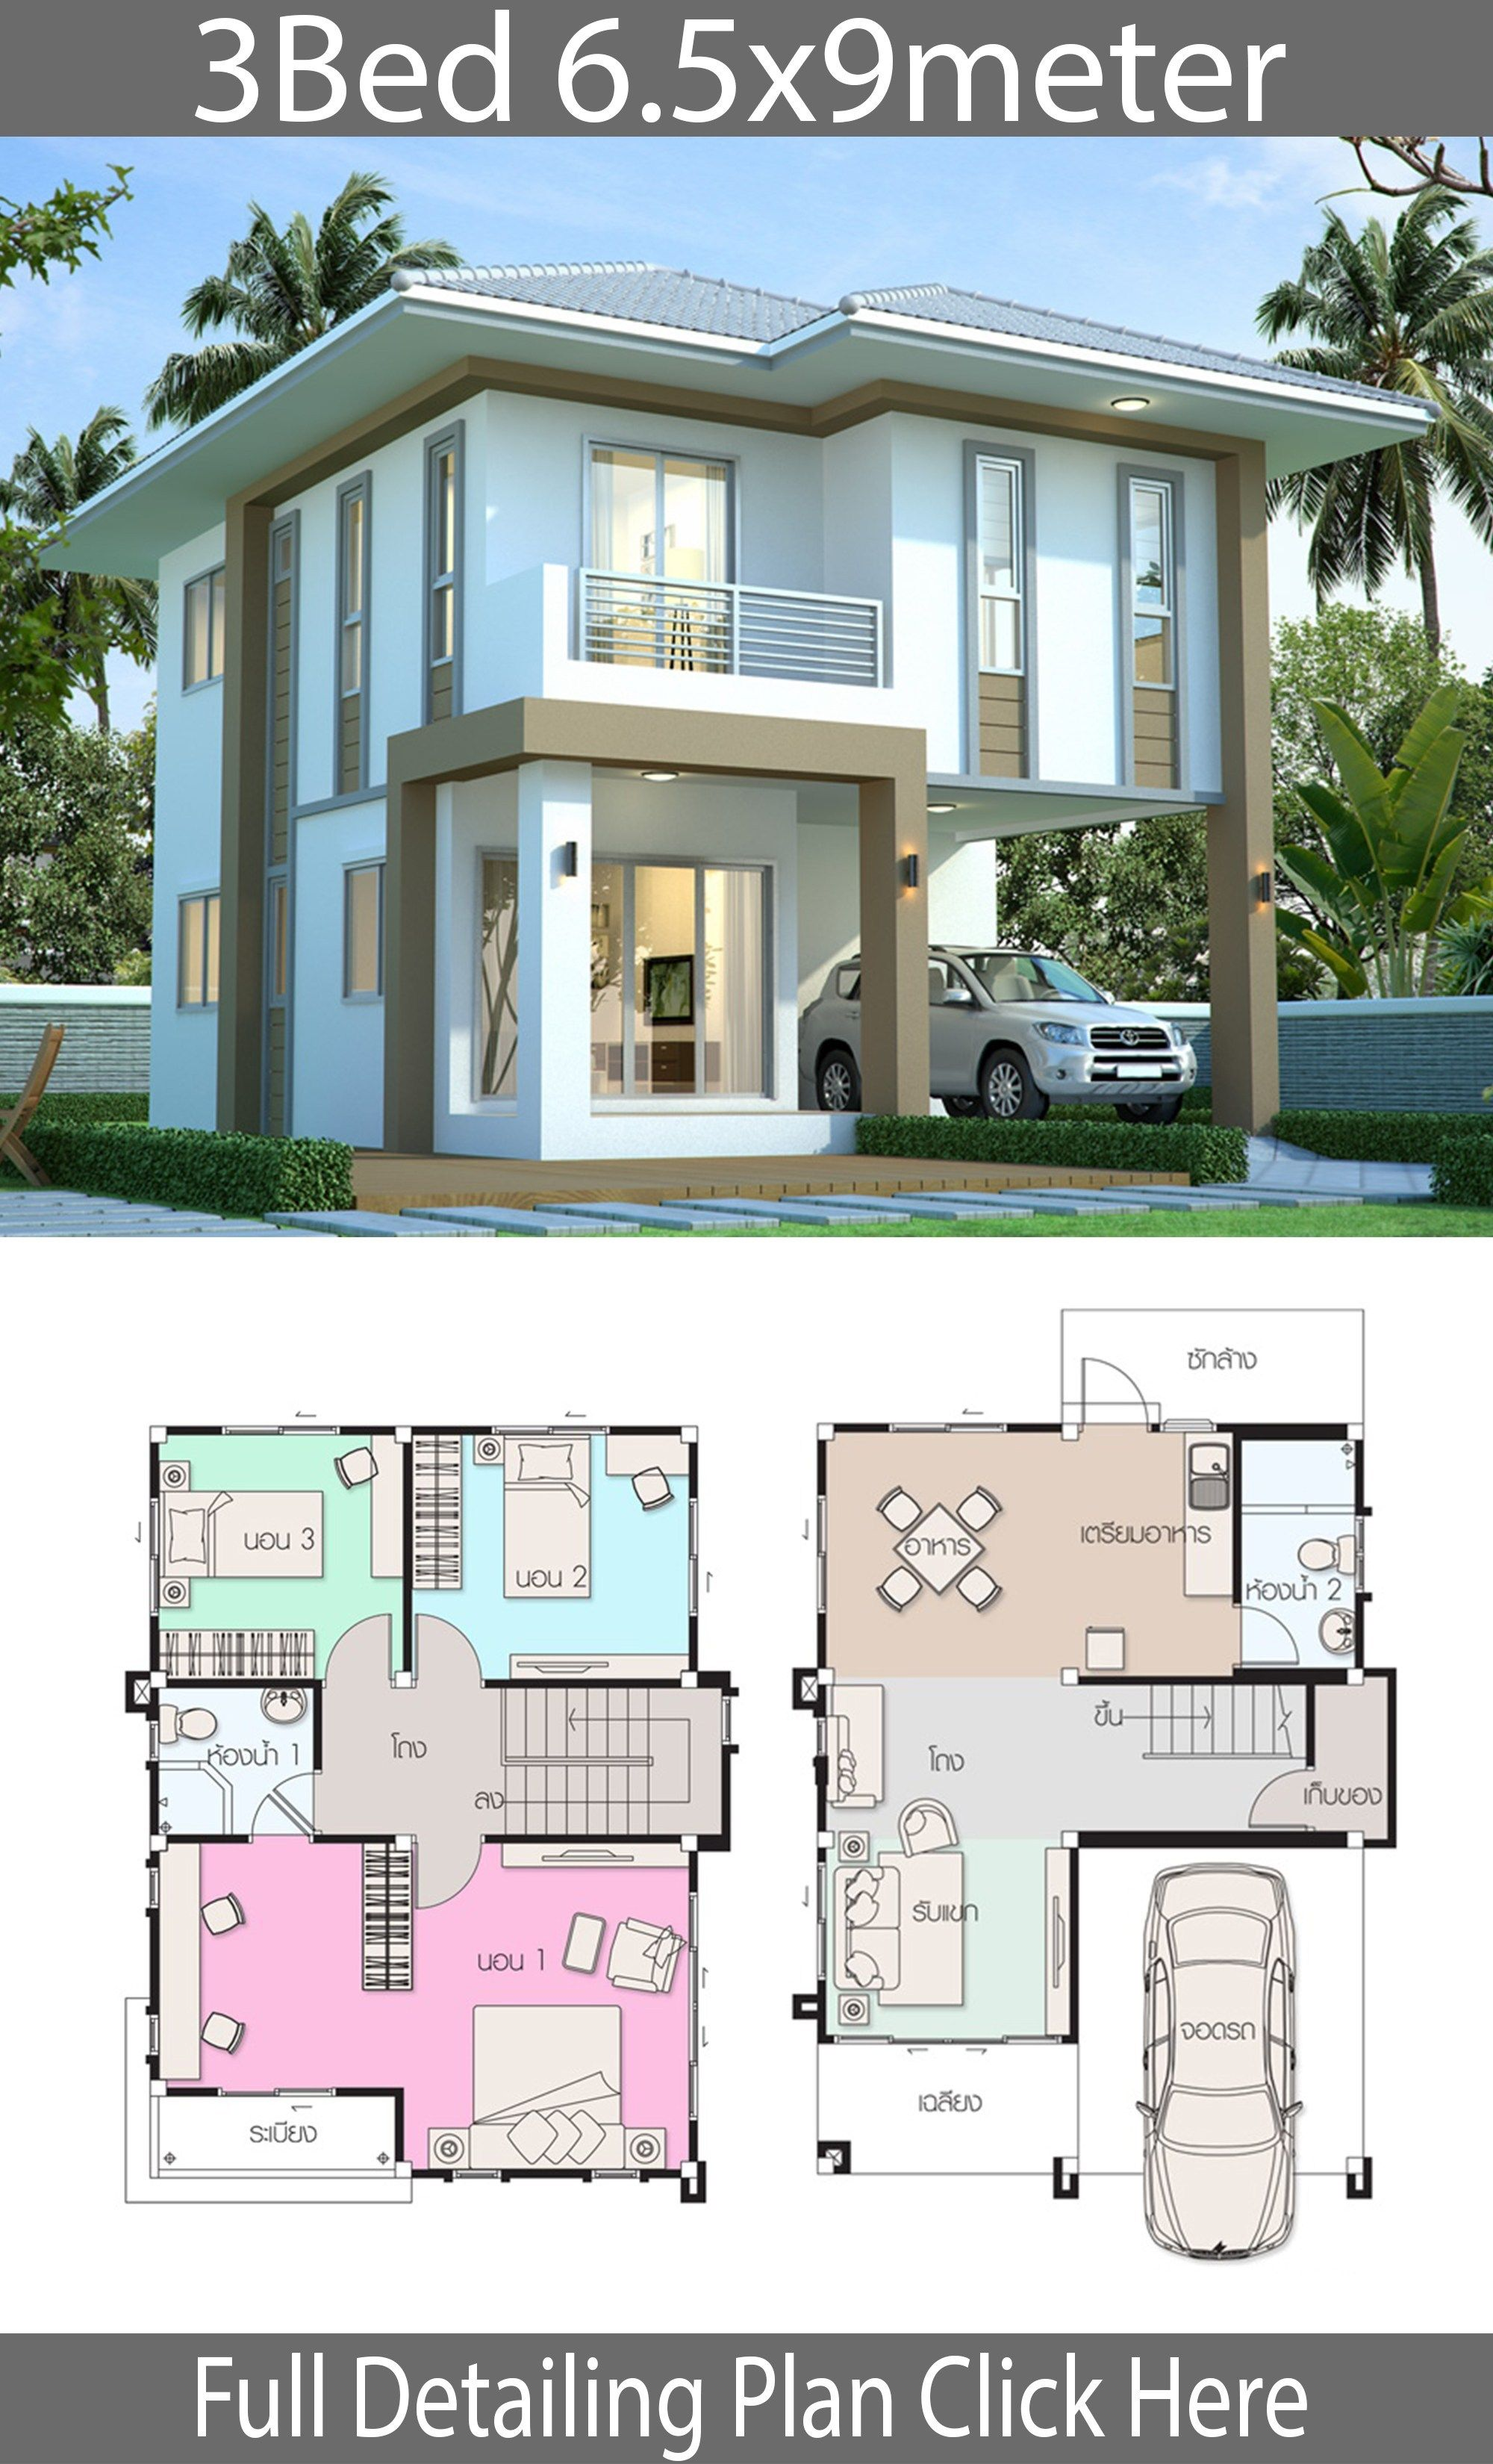 House Design Plan 6 5x9m With 3 Bedrooms Style Modernhouse Description Number Of Floors 2 Stor House Construction Plan Model House Plan House Designs Exterior